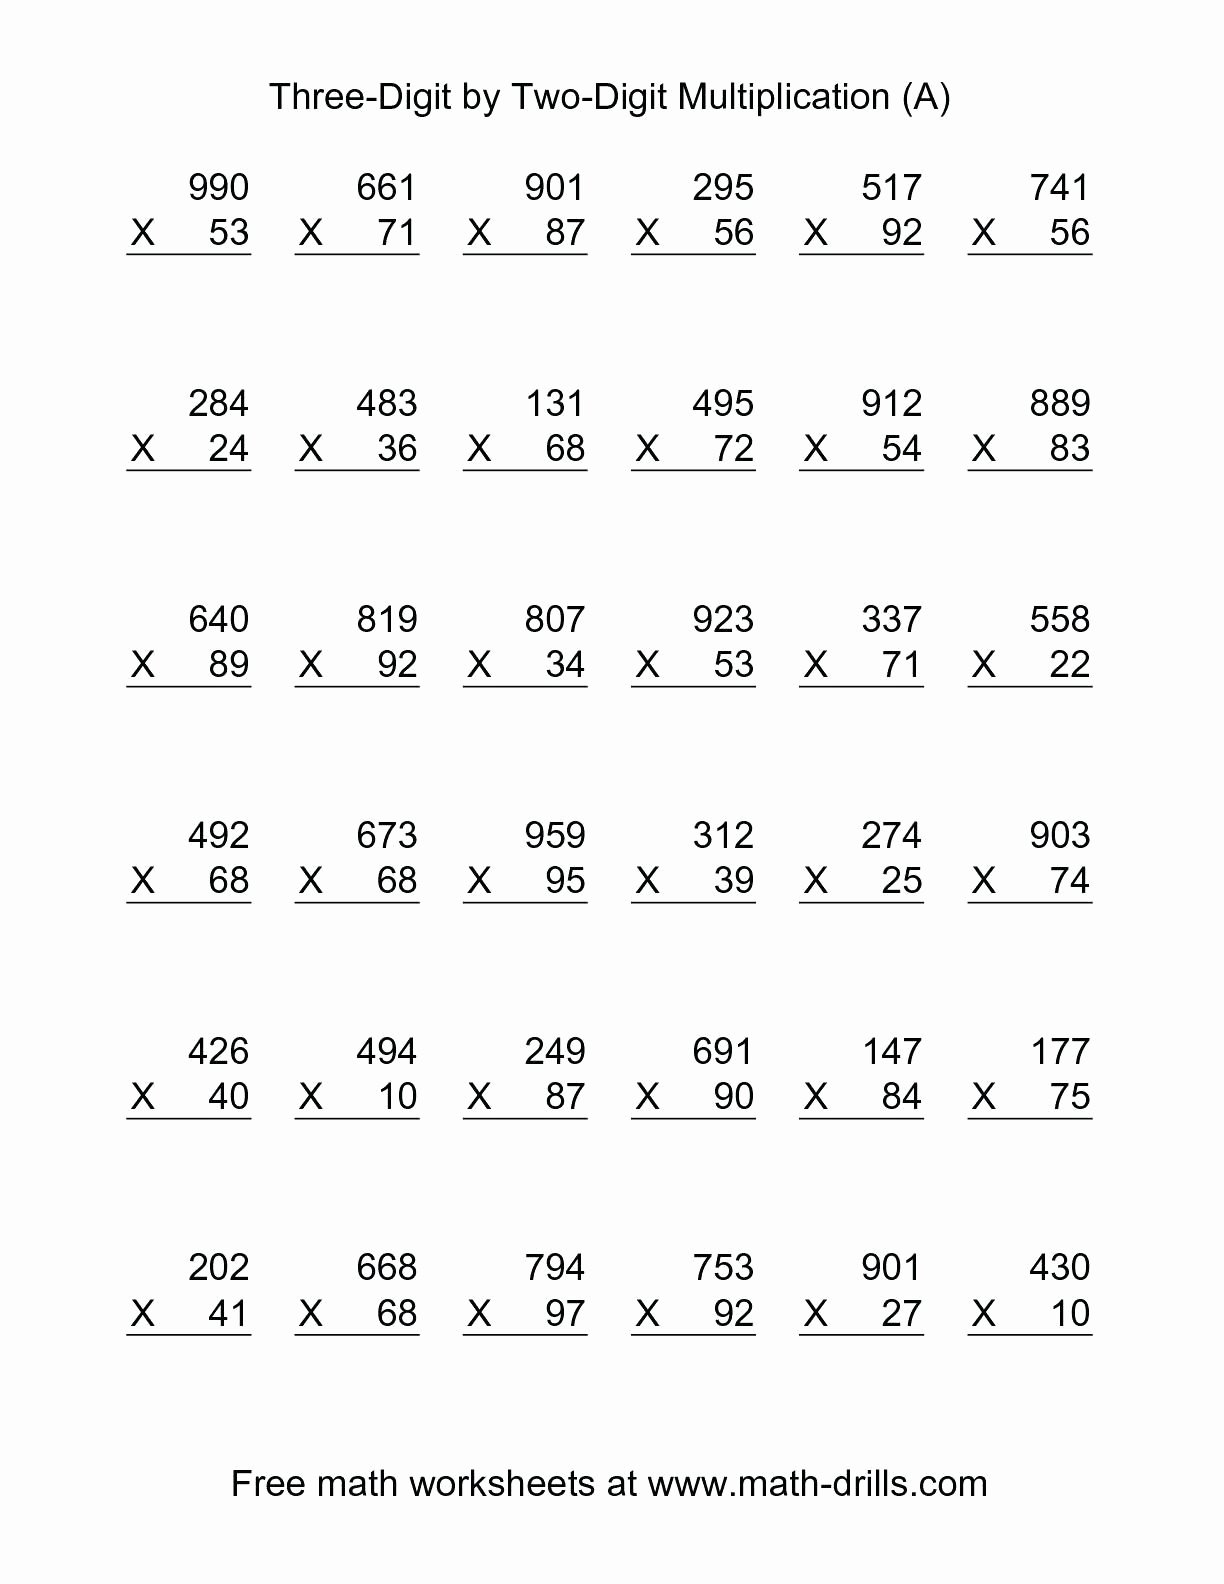 5th Grade Multiplication Worksheets Best Of 5th Grade Multiplication Worksheets for Printable In 2020